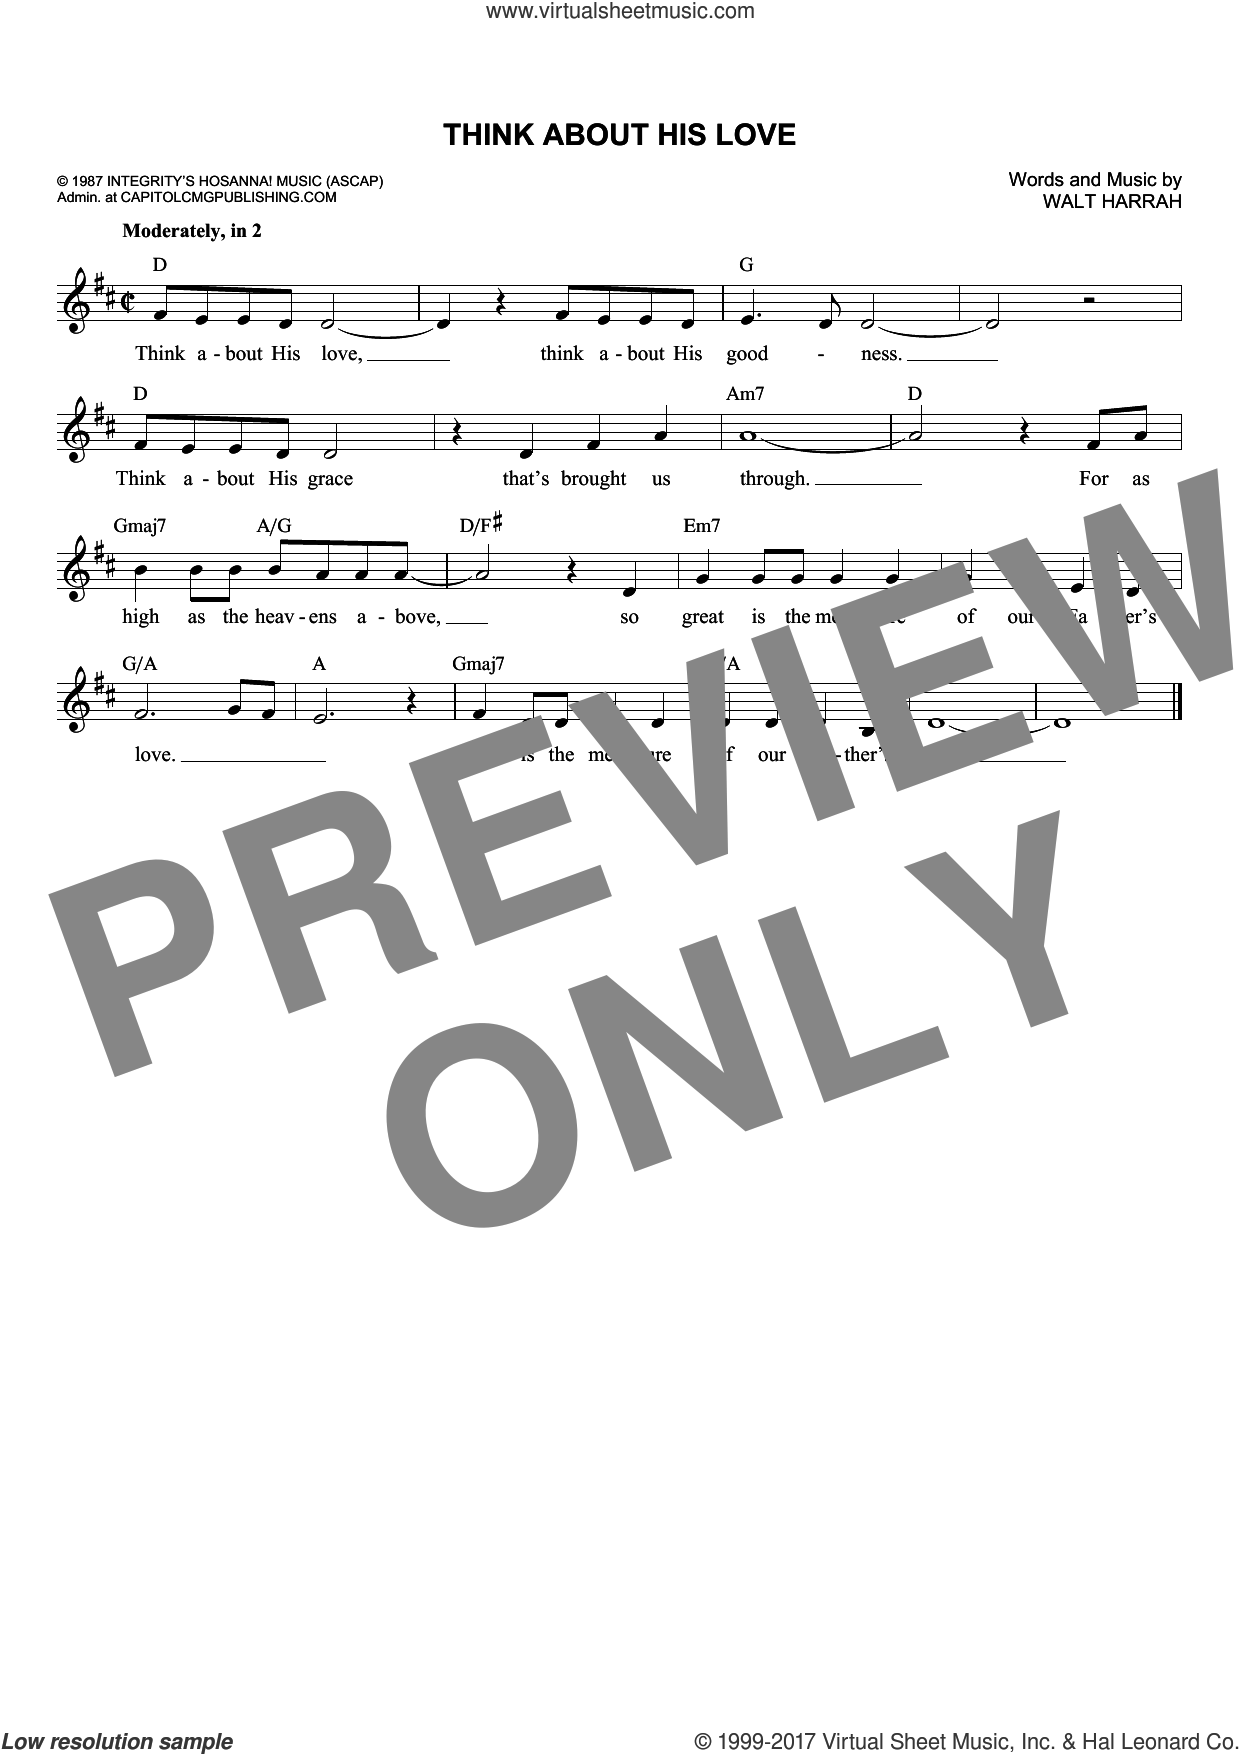 Think About His Love sheet music for voice and other instruments (fake book) by Walt Harrah. Score Image Preview.